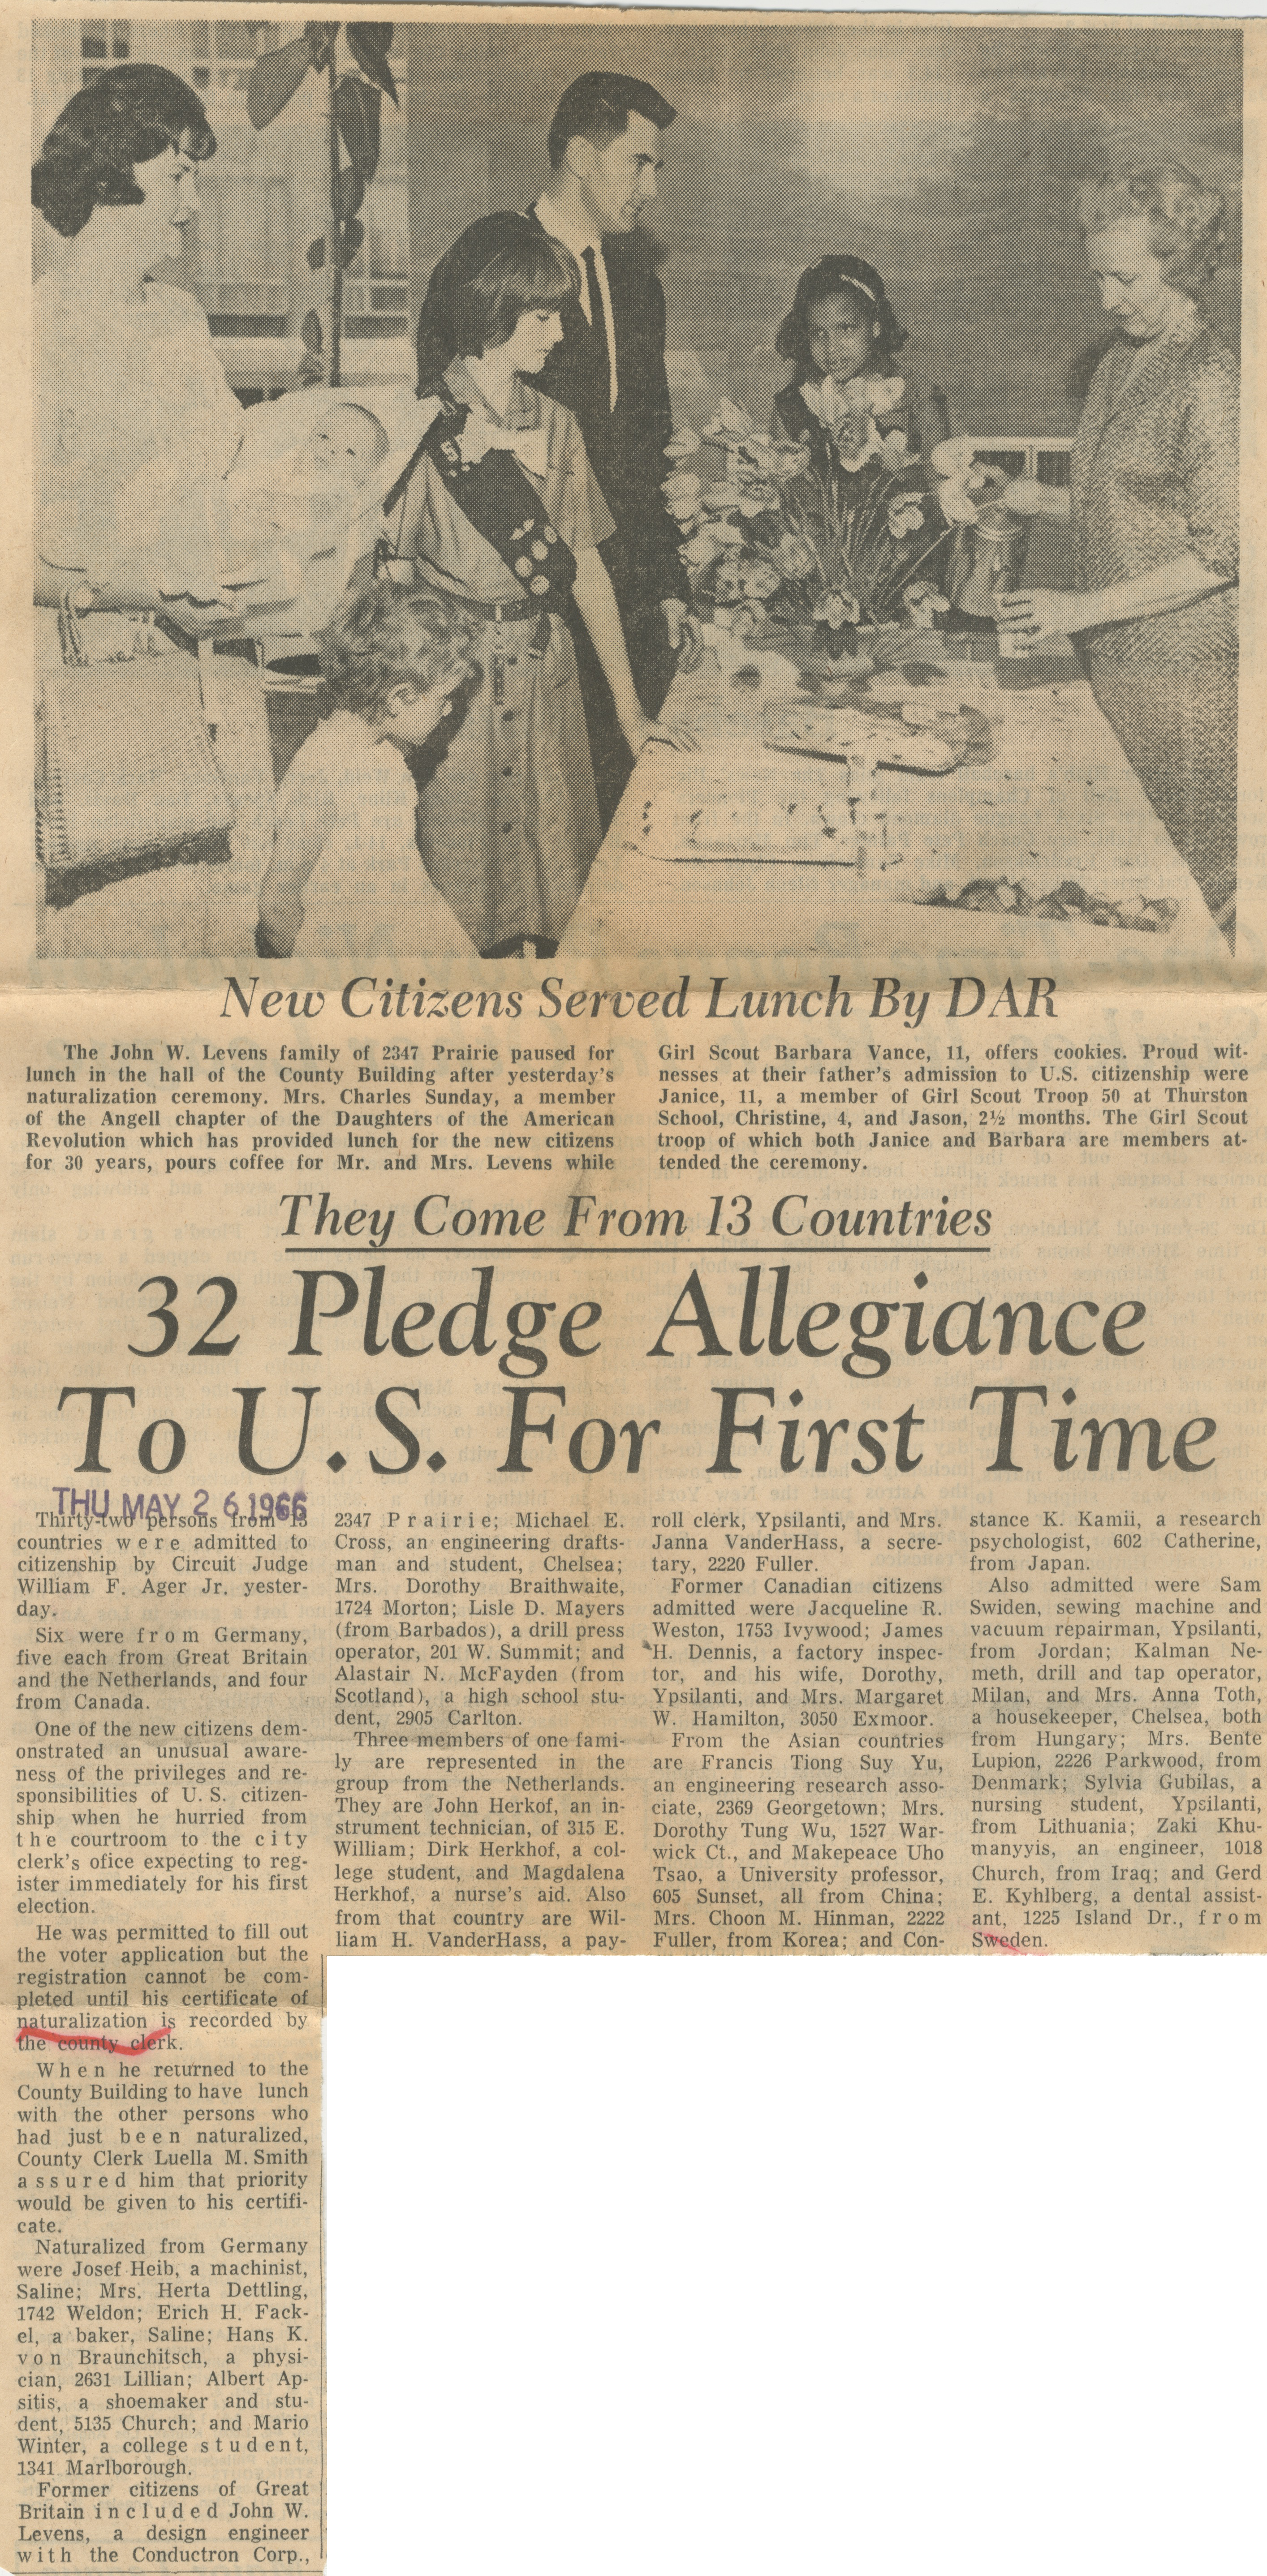 32 Pledge Allegiance To U.S. For First Time image